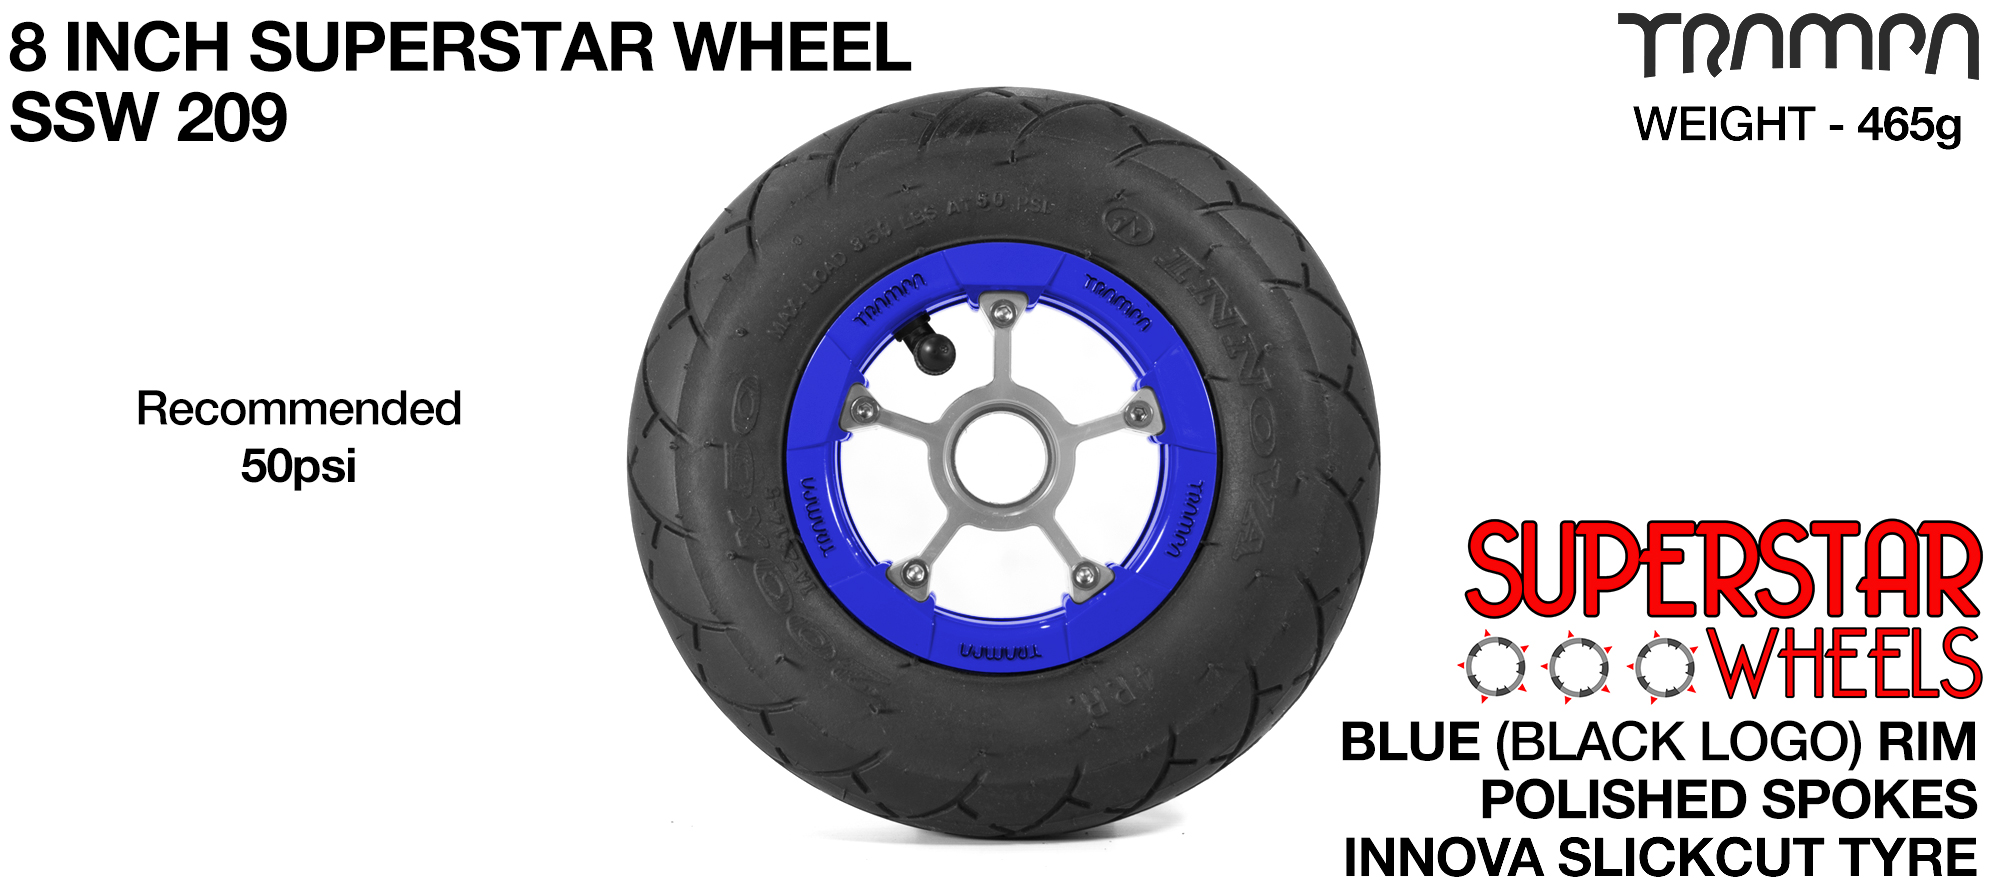 Superstar 8 inch wheel - Blue Gloss Black Logo Superstar Rim with Silver Anodised spokes & Black Slick Cut 8 inch Tyre